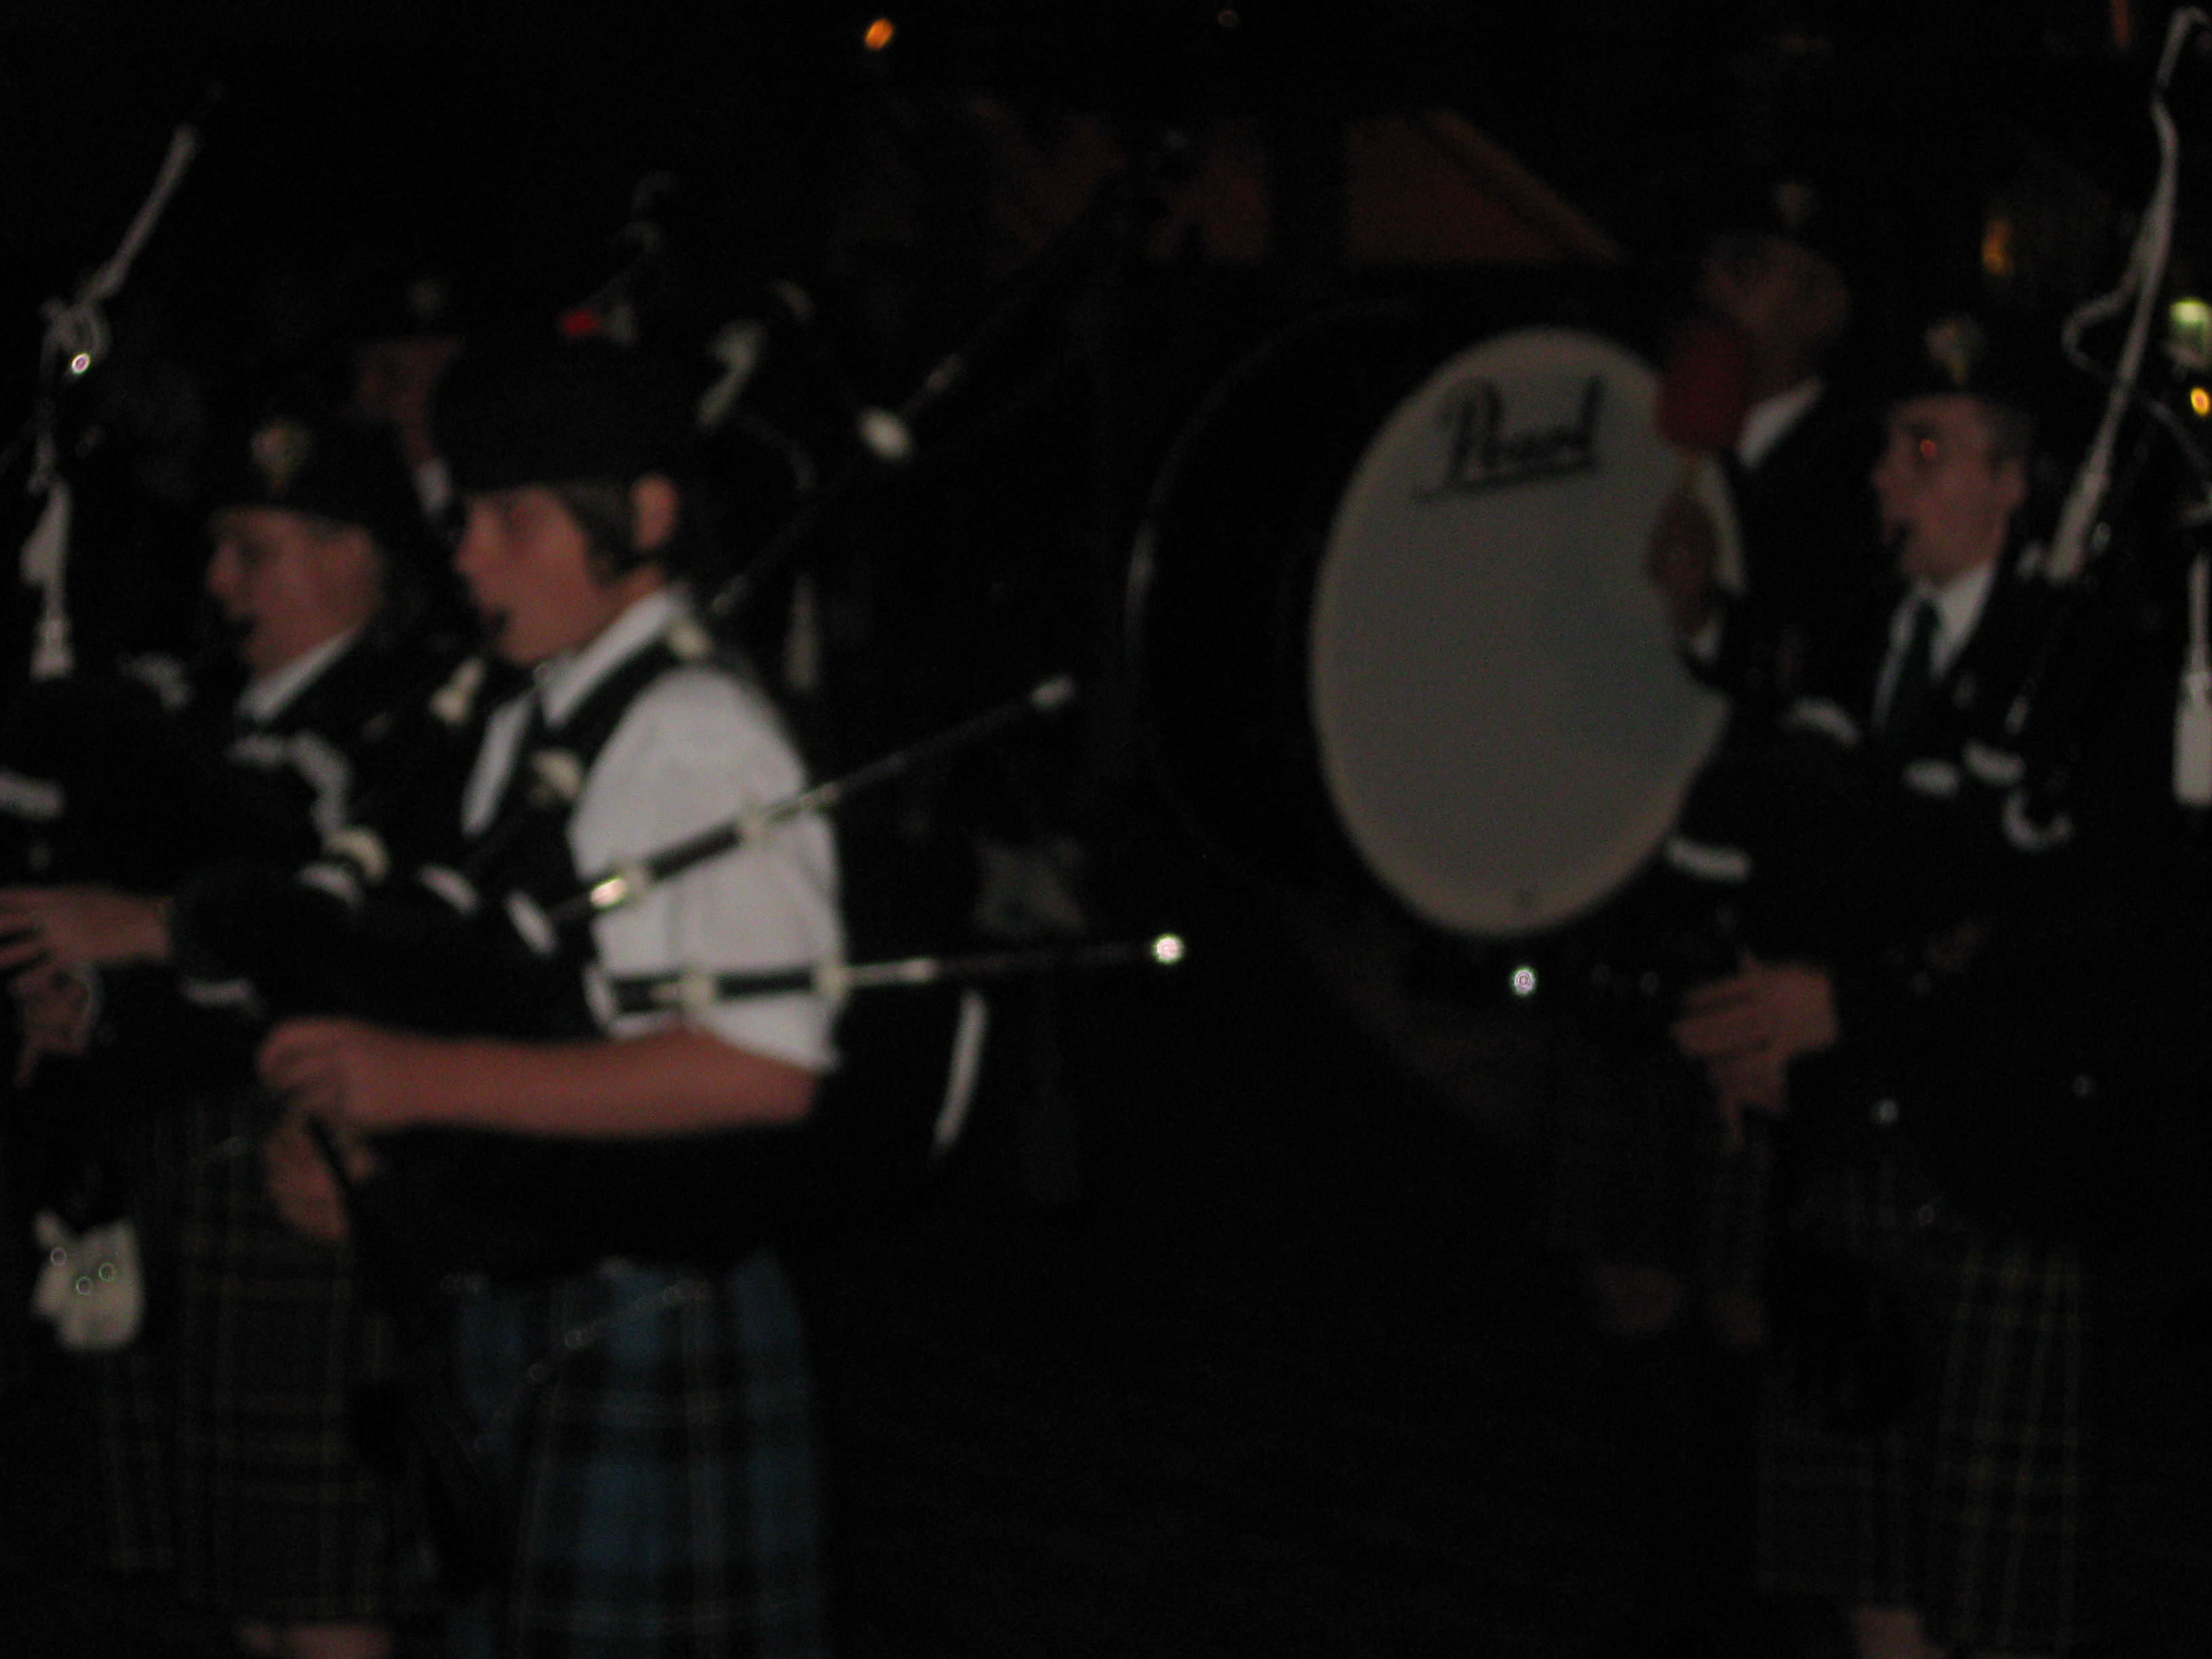 bagpipes 1012011049411050247225049